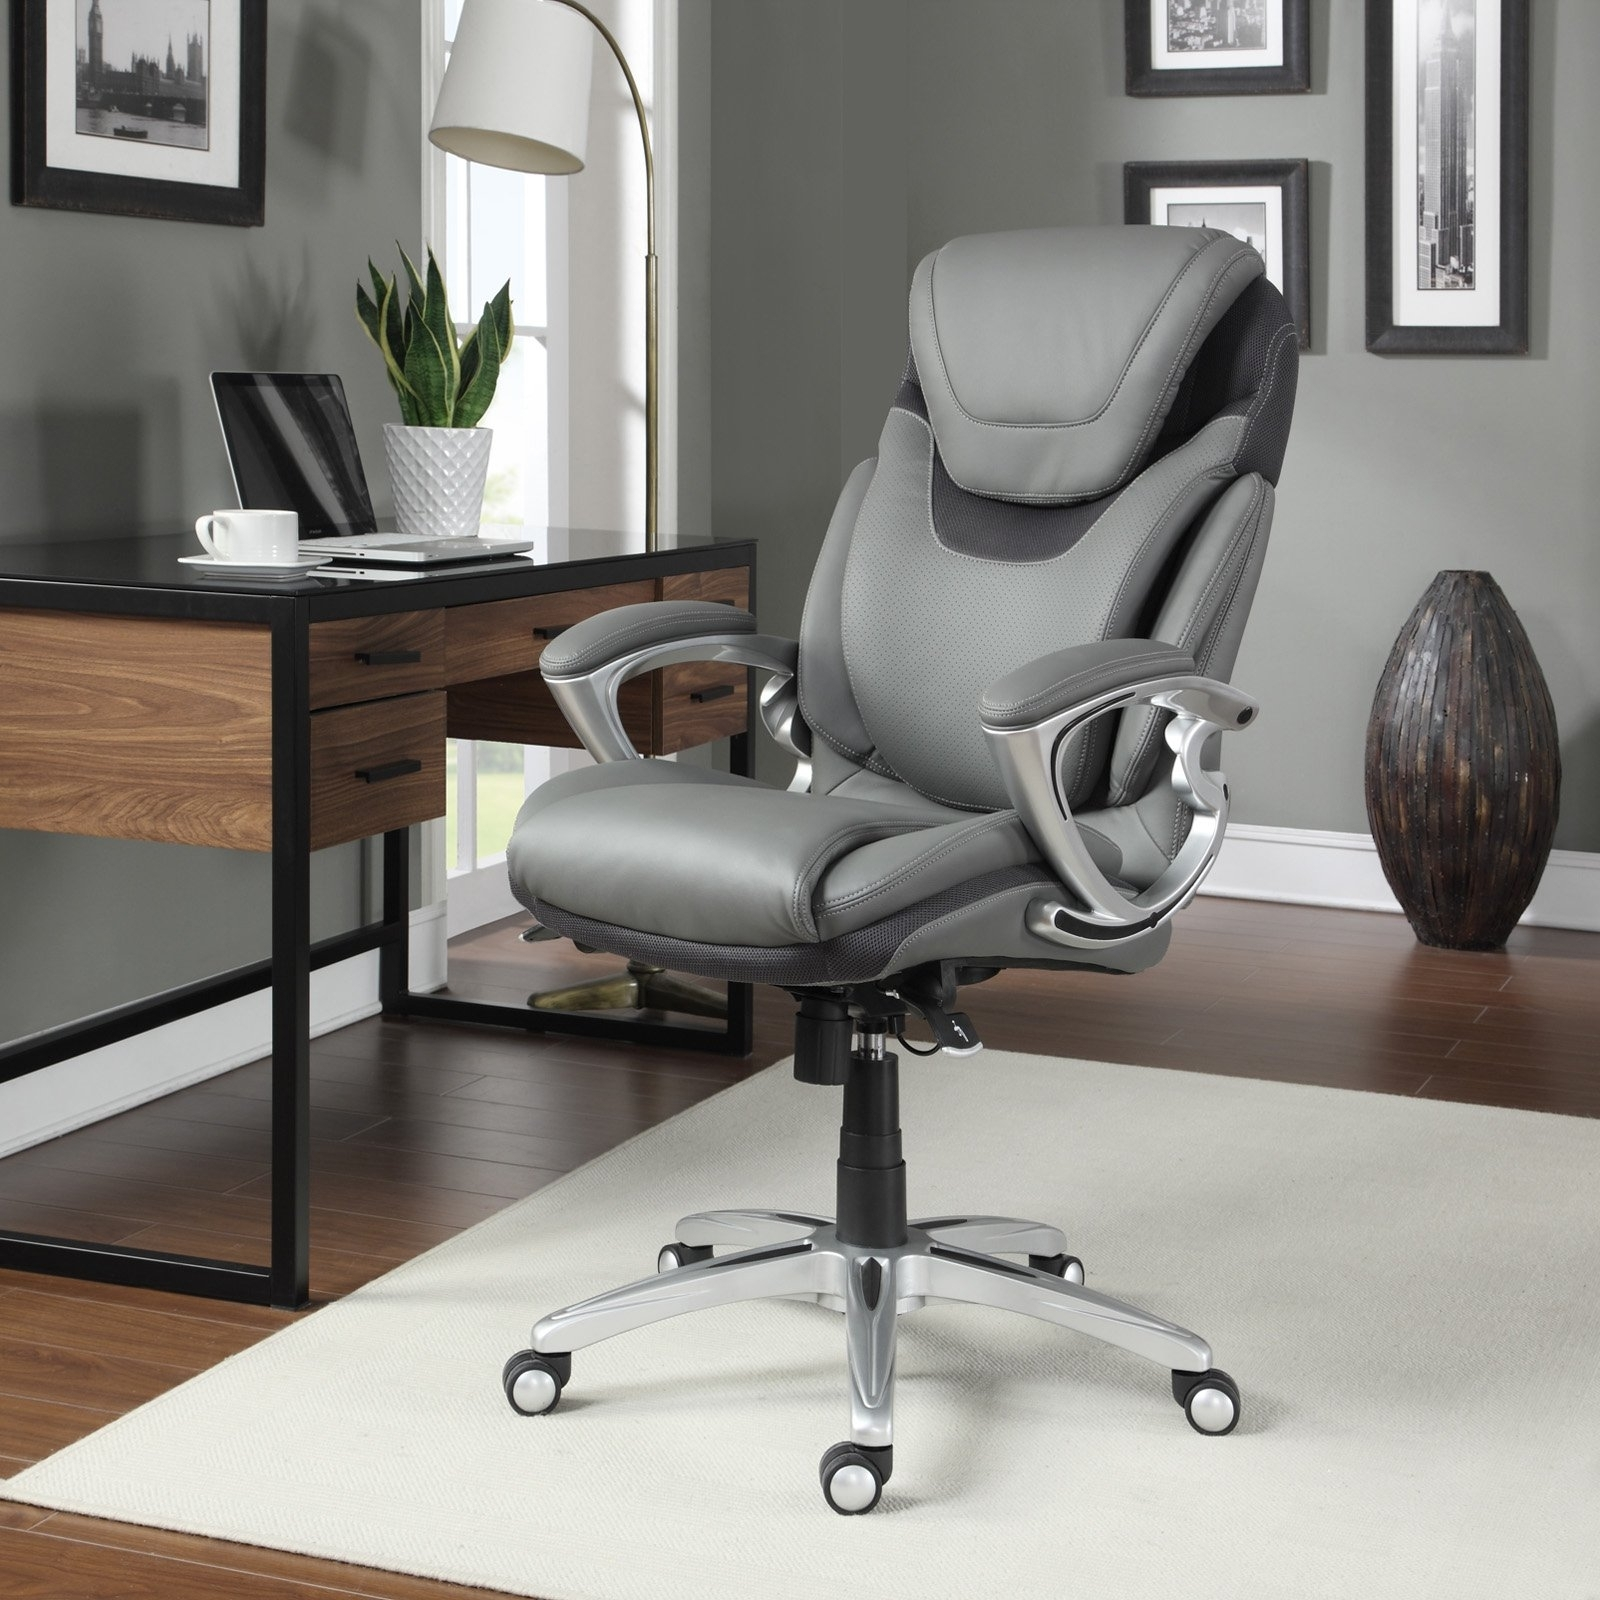 2019 Red Leather Executive Office Chairs With Regard To Serta Air Health & Wellness Leather Executive Office Chair, Light (View 1 of 20)